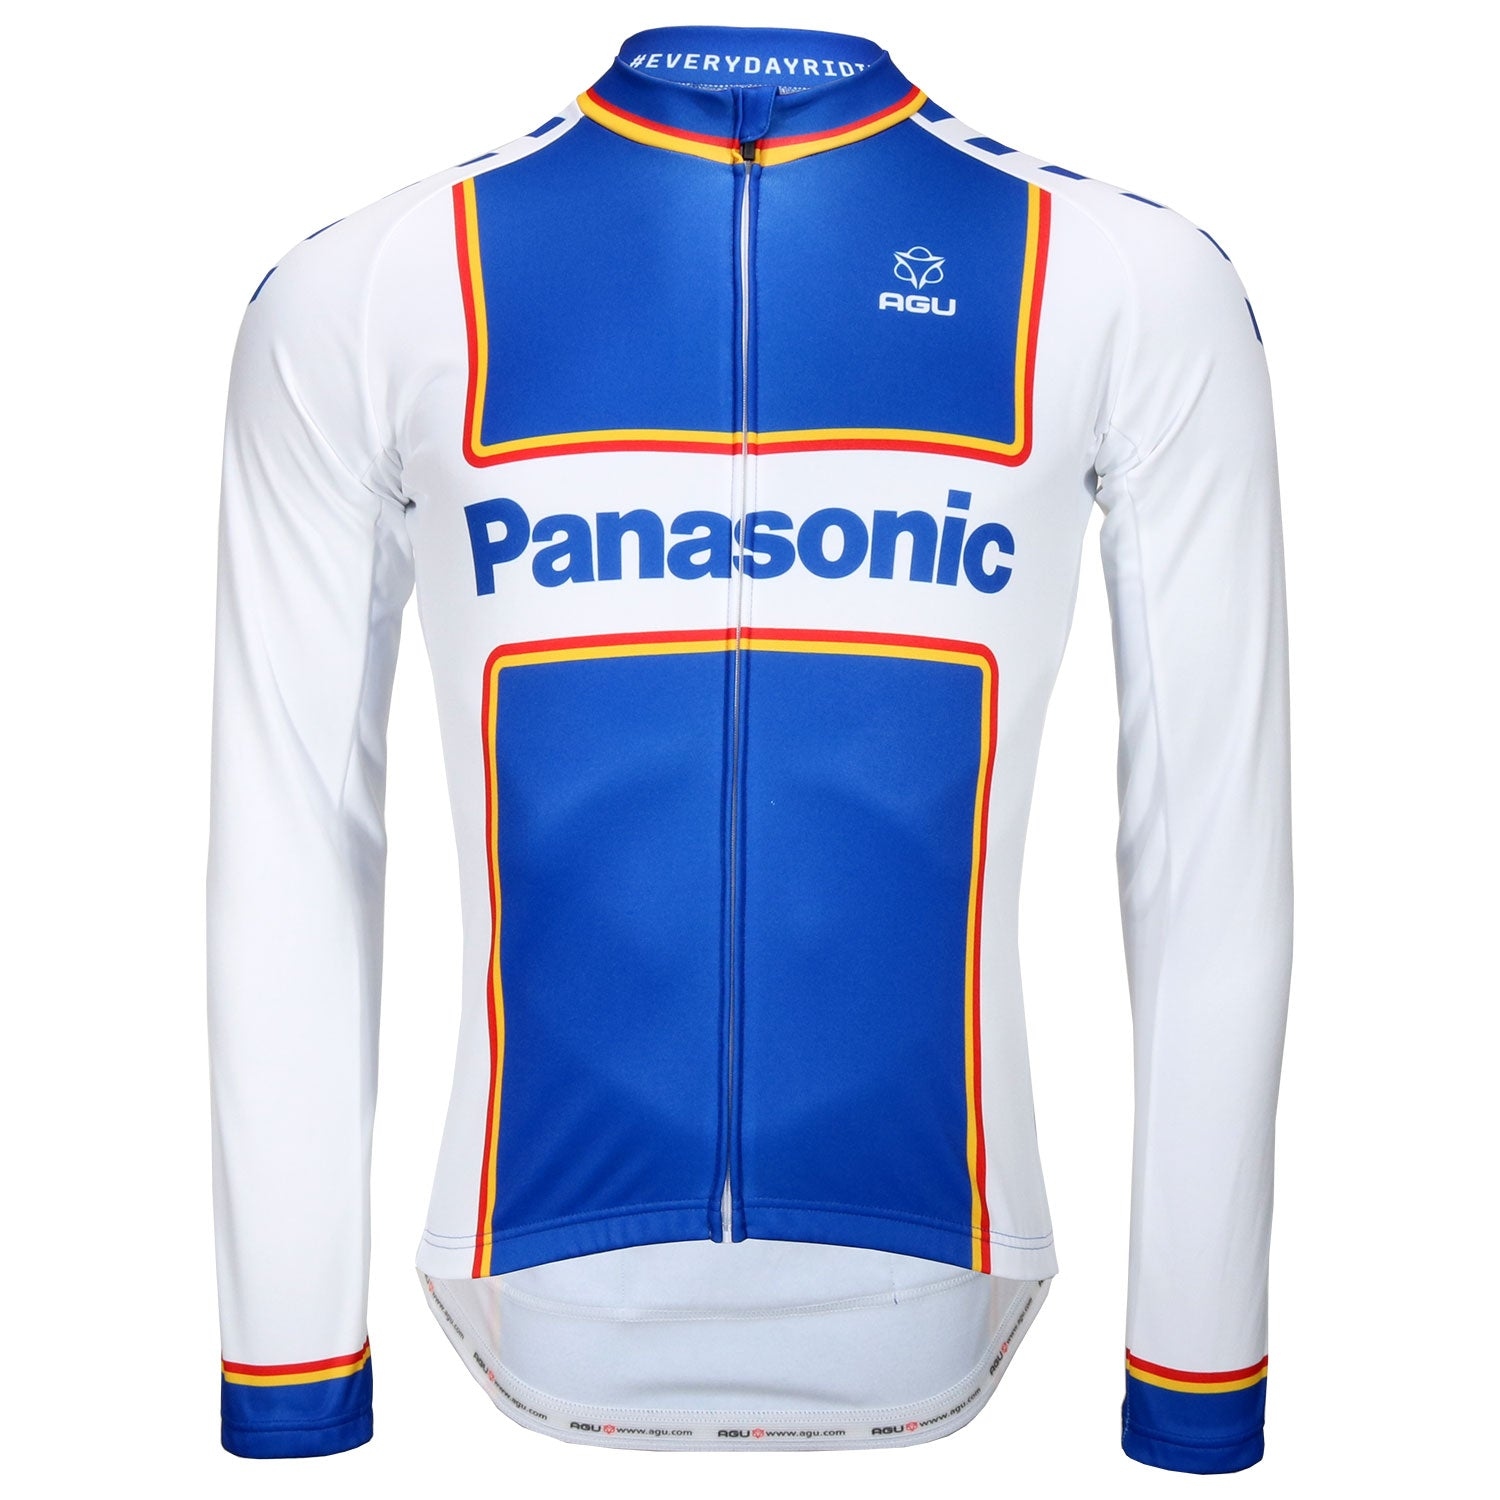 Panasonic retro long sleeve jersey by AGU